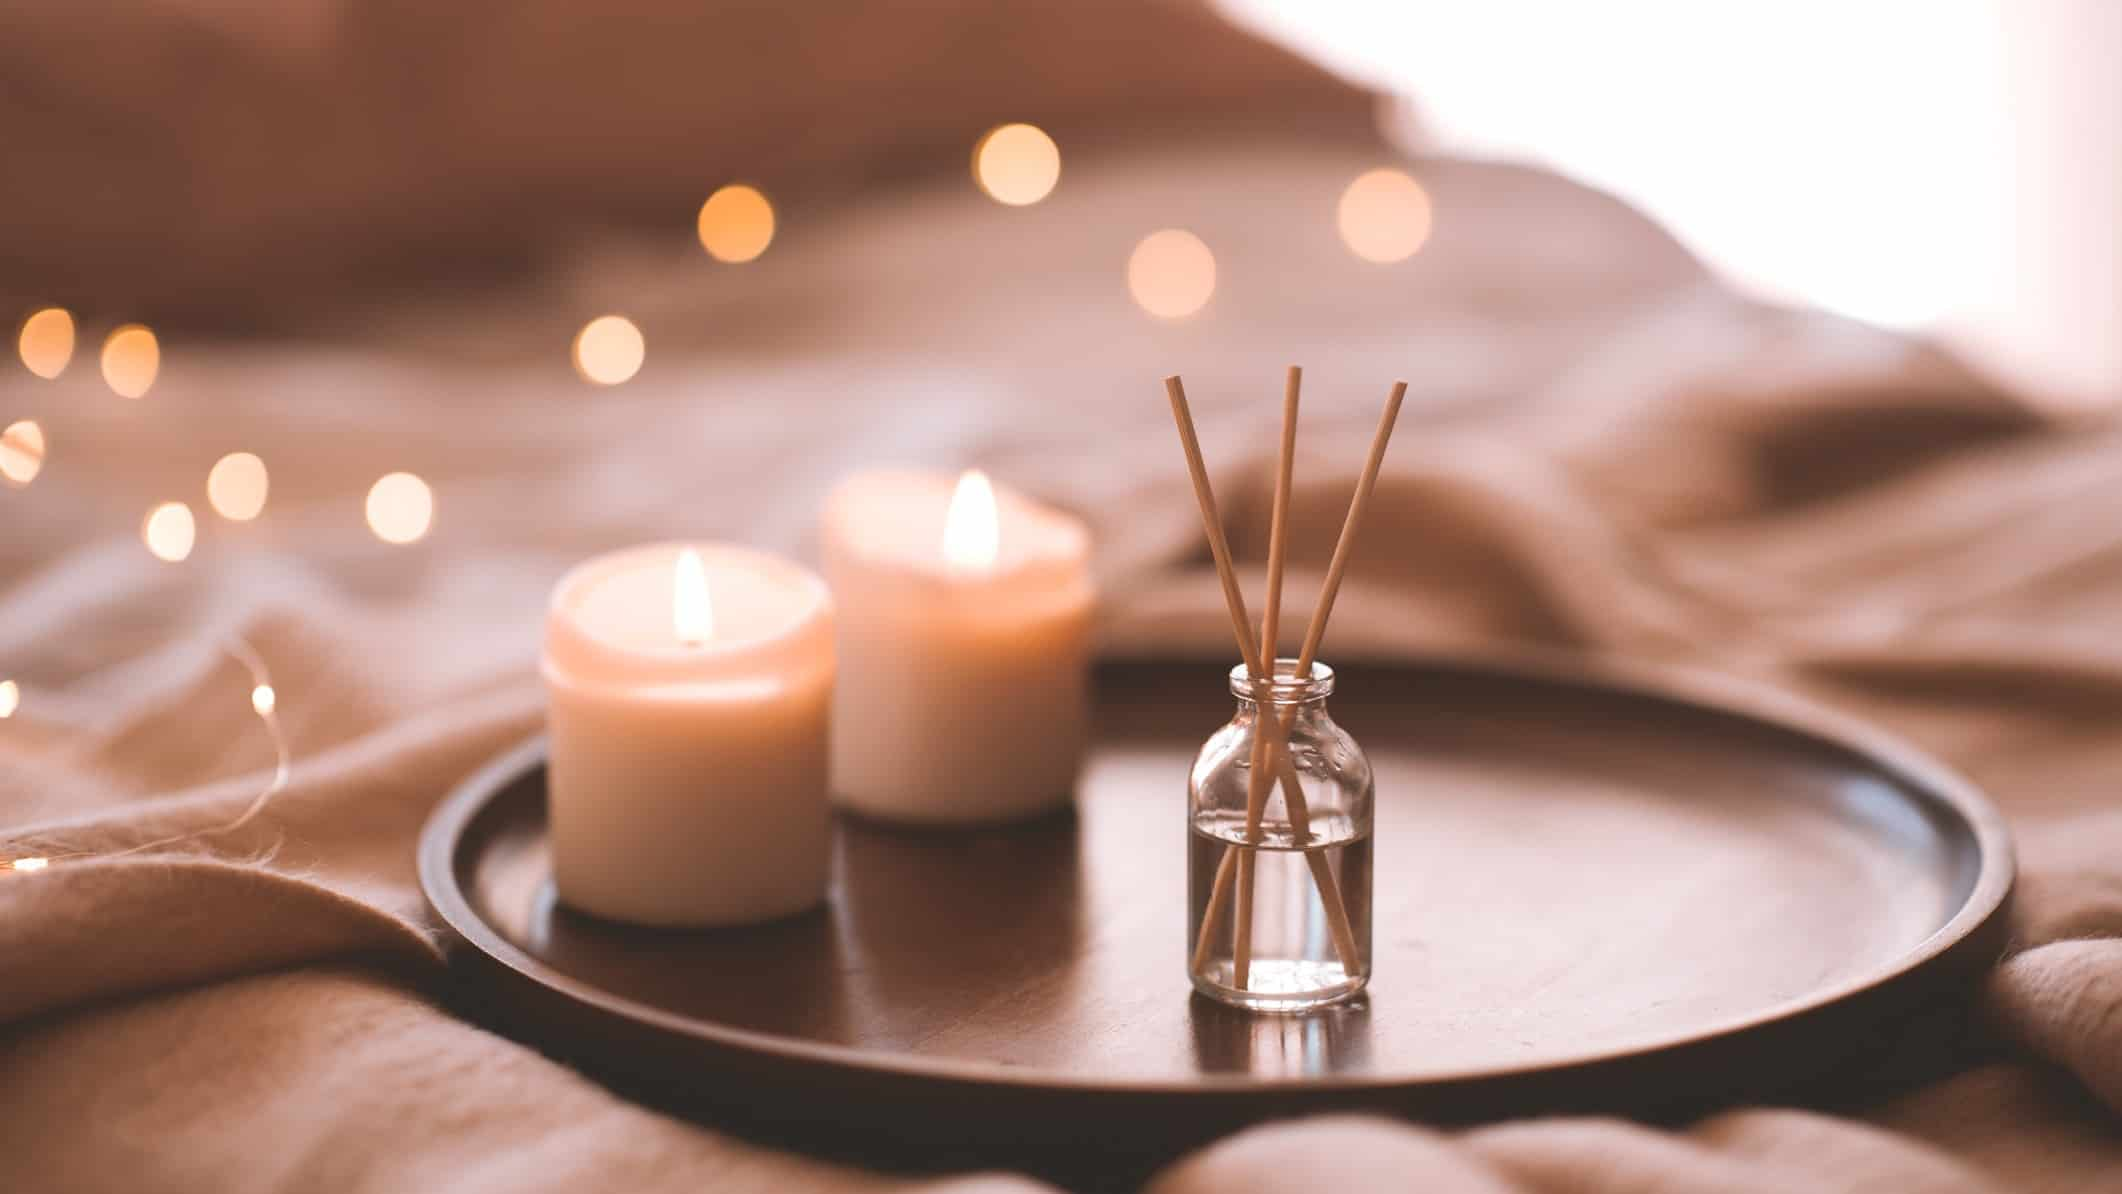 homewares asx share price represented by candles and reed diffuser on tray